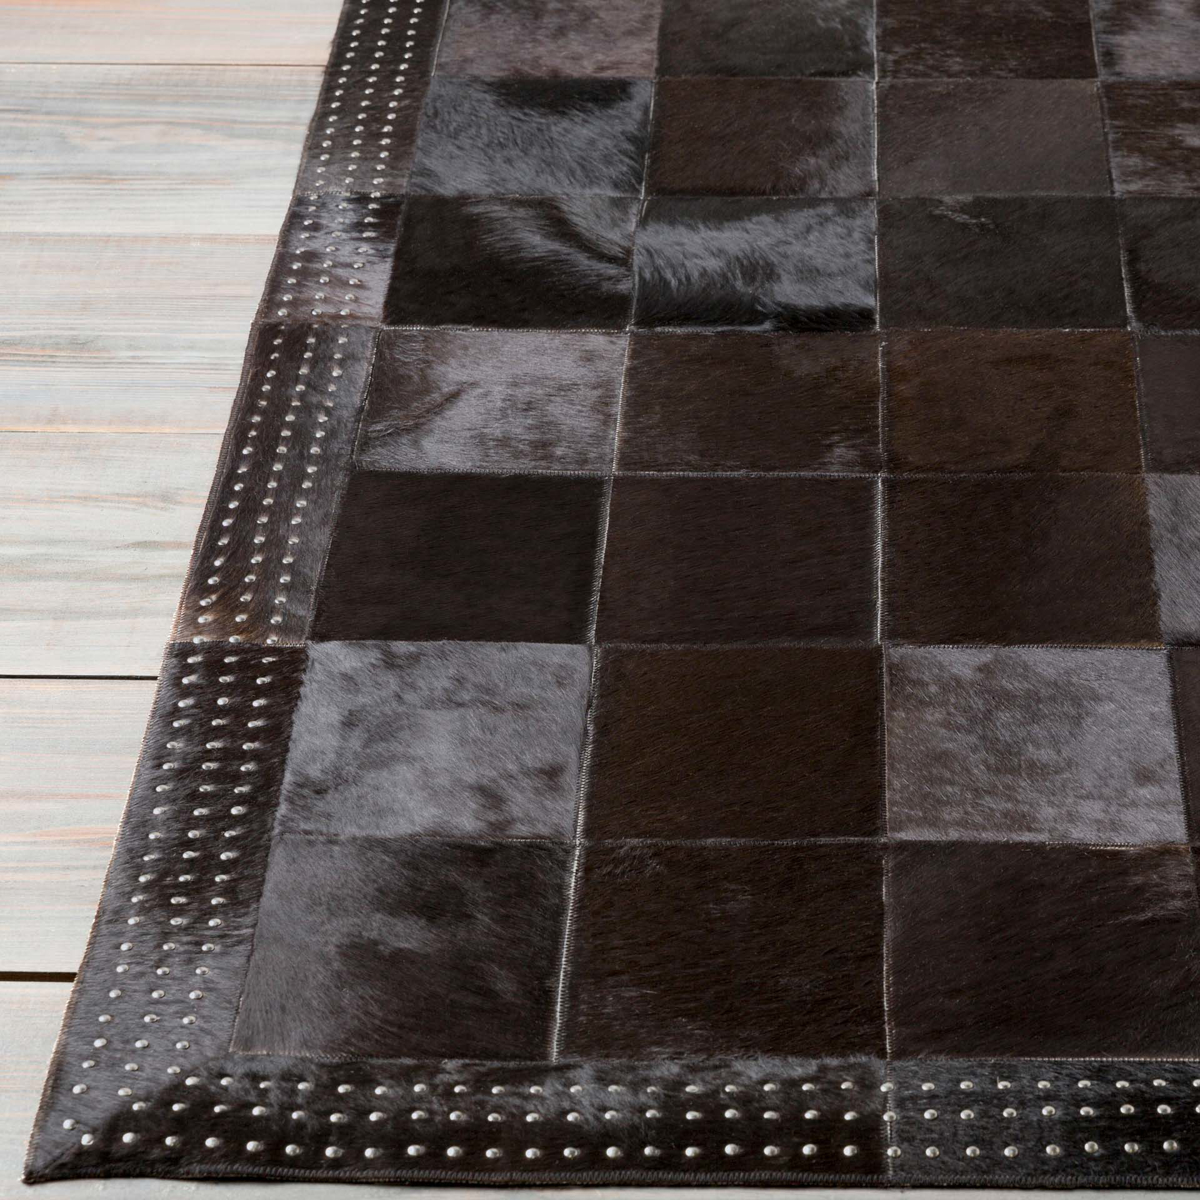 Handmade hair on hide area rug from India with black and metallic silver patchwork pattern	 - Close up